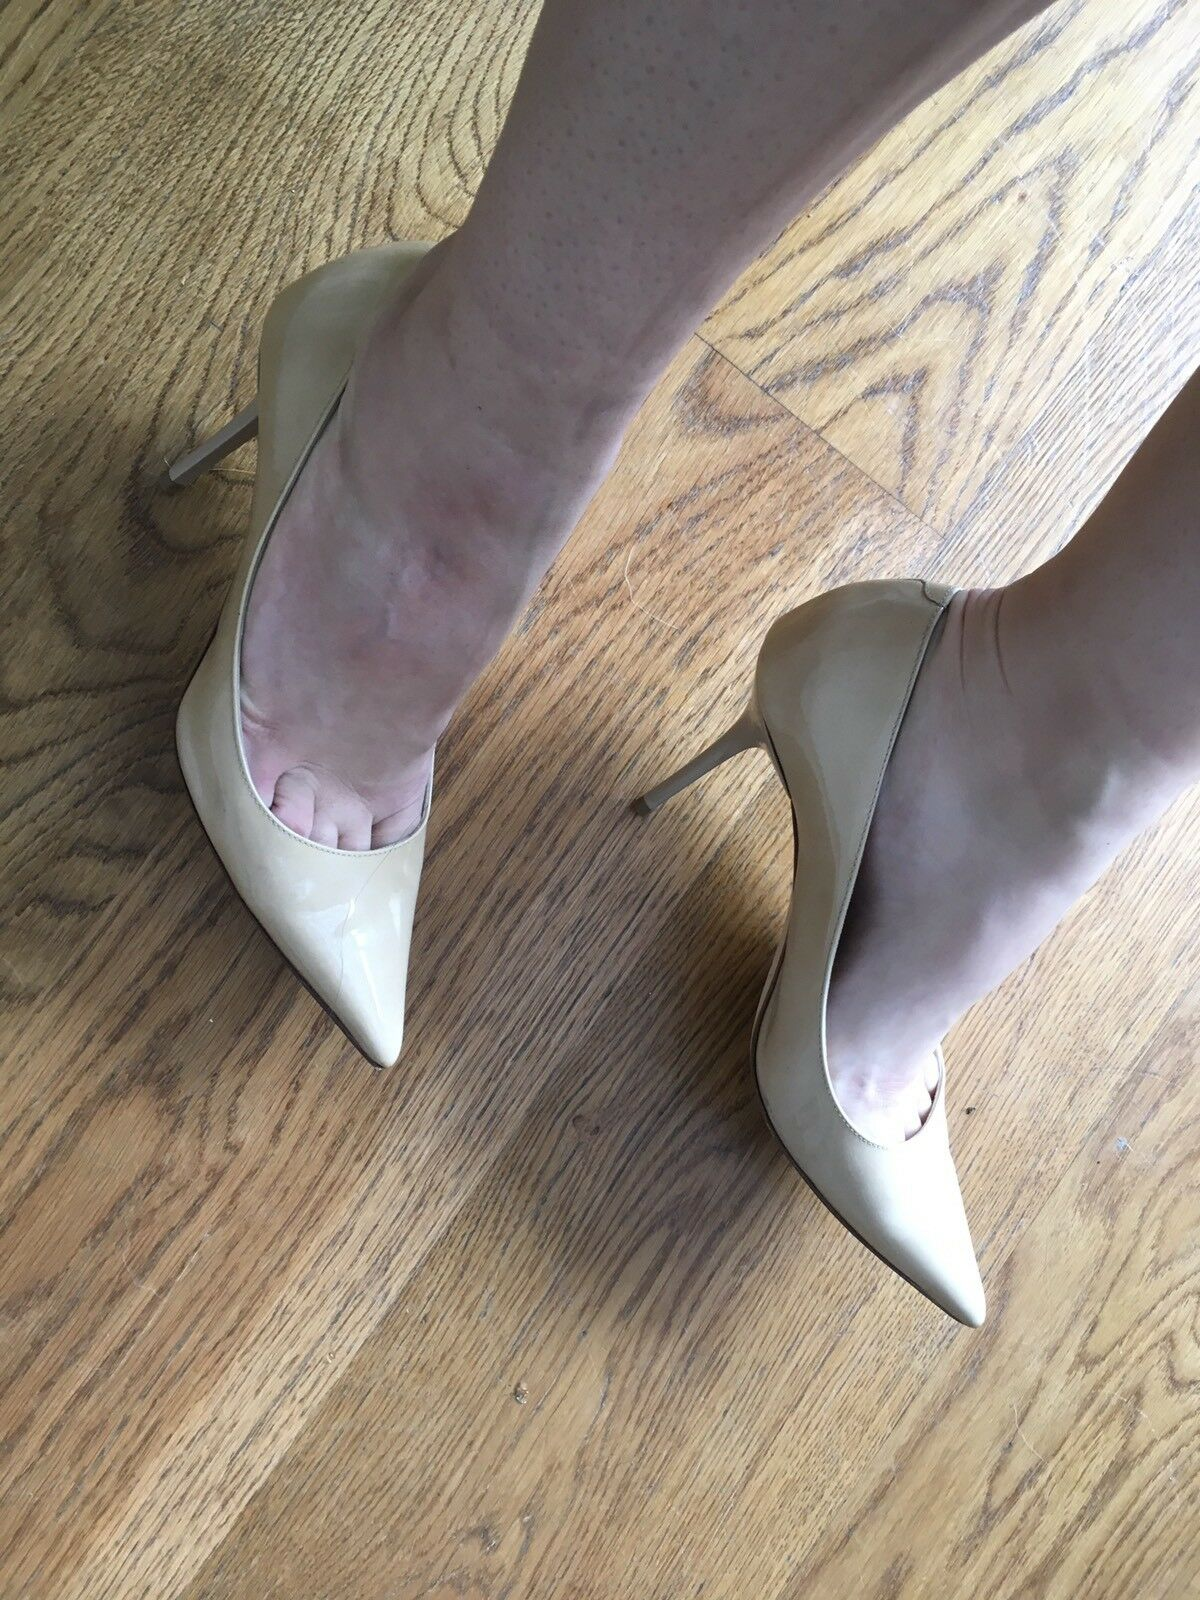 JIMMY CHOO POINTED TOE BEIGE NUDE PATENT PUMPS SHOES SIZE 35 1 2 UK 2.5 US 5.5